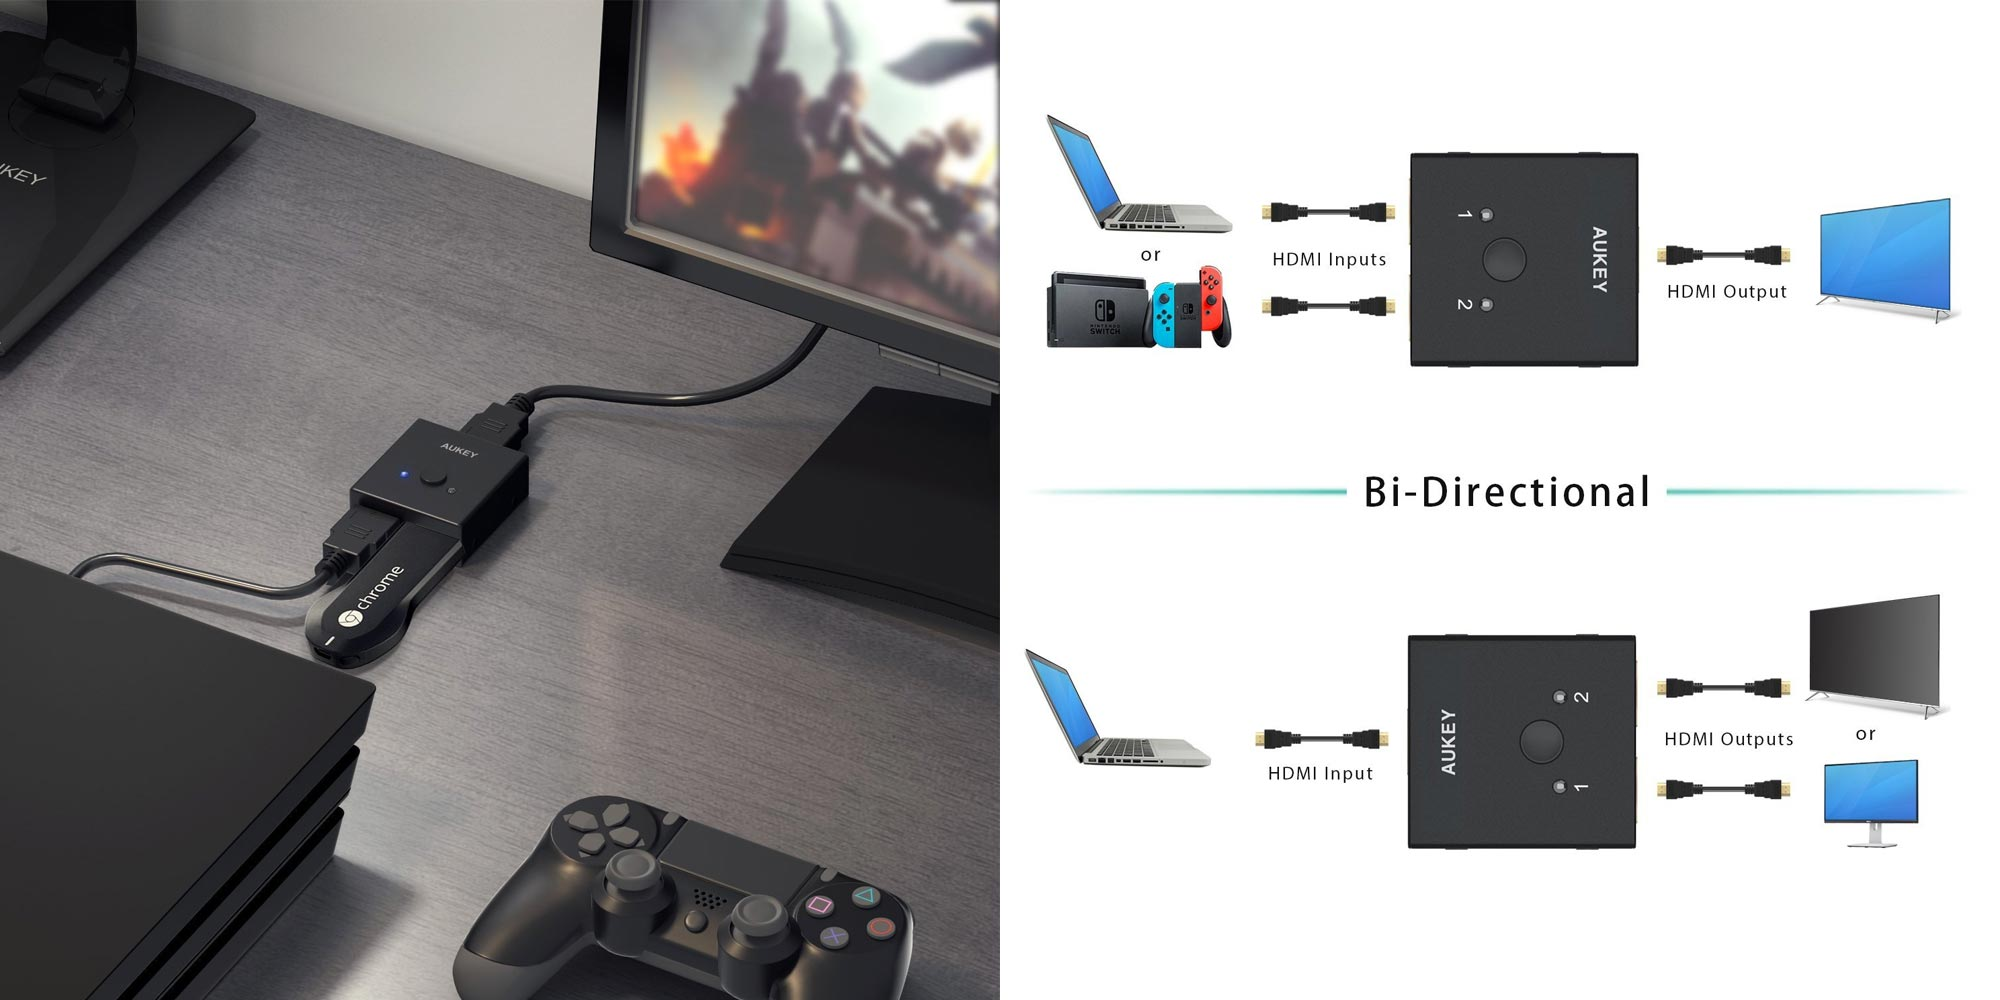 AUKEY's Bi-Directional HDMI Switch is a must-have for any home theater at $11